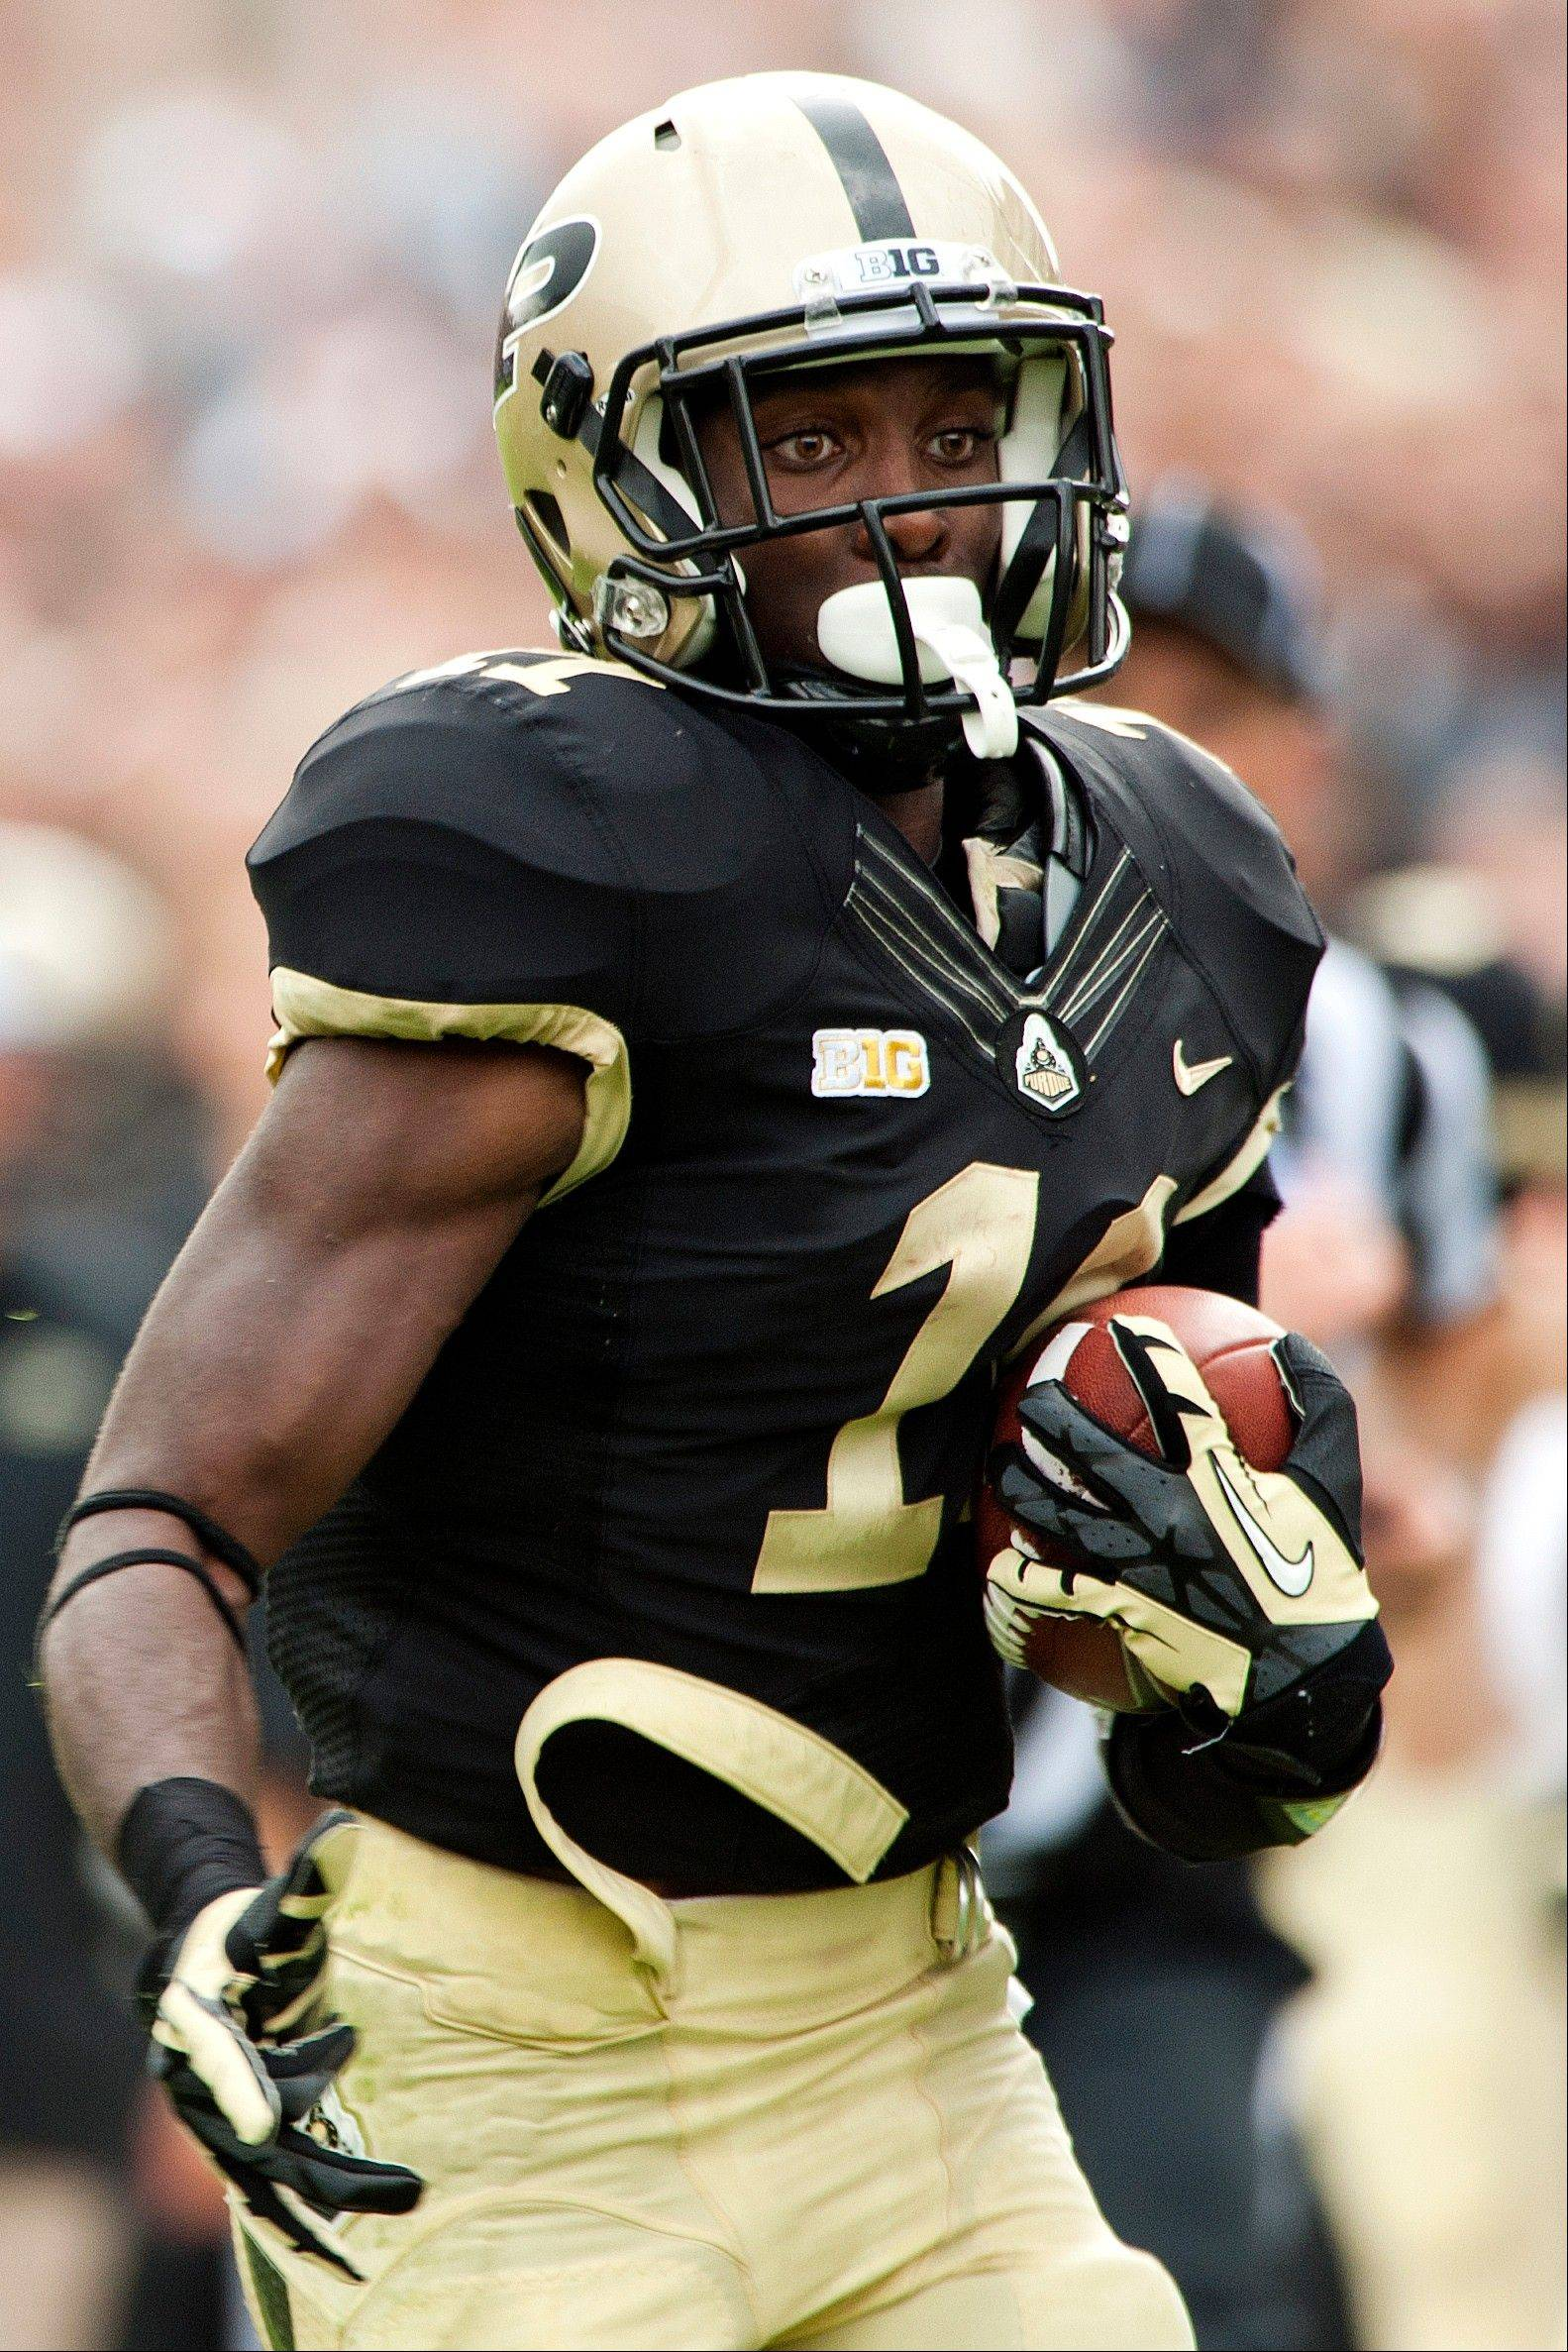 Purdue's Akeem Hunt carries the ball down the sideline against Eastern Kentucky last Saturday in West Lafayette, Ind.